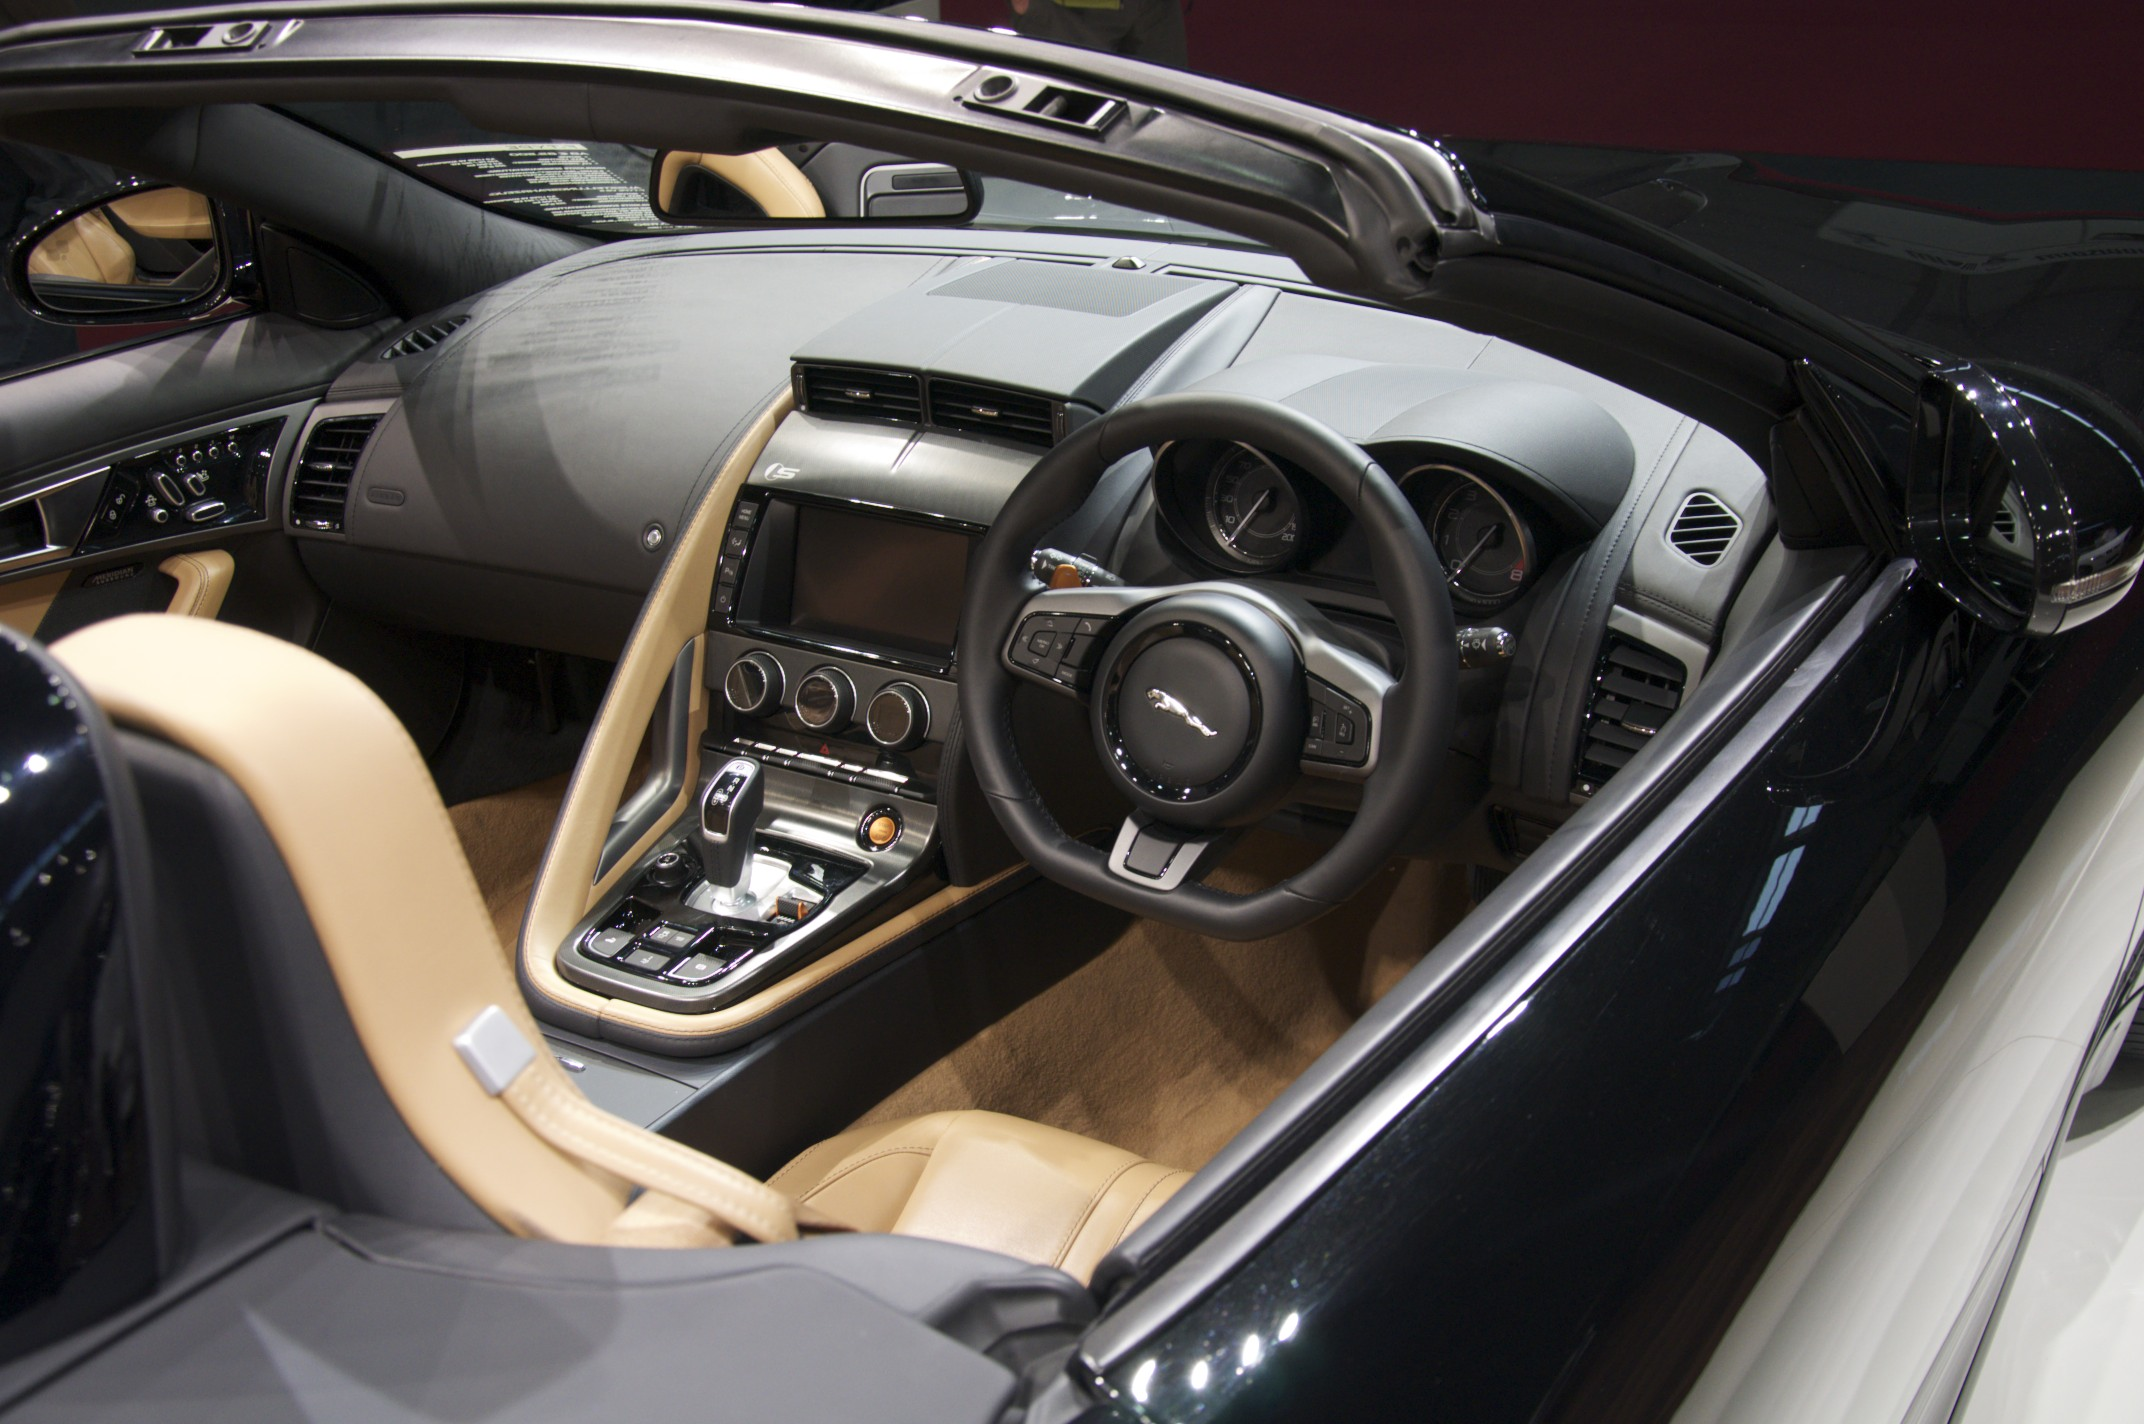 Attractive Jaguar F Type Interior U003eu003e File:Jaguar F Type Interior